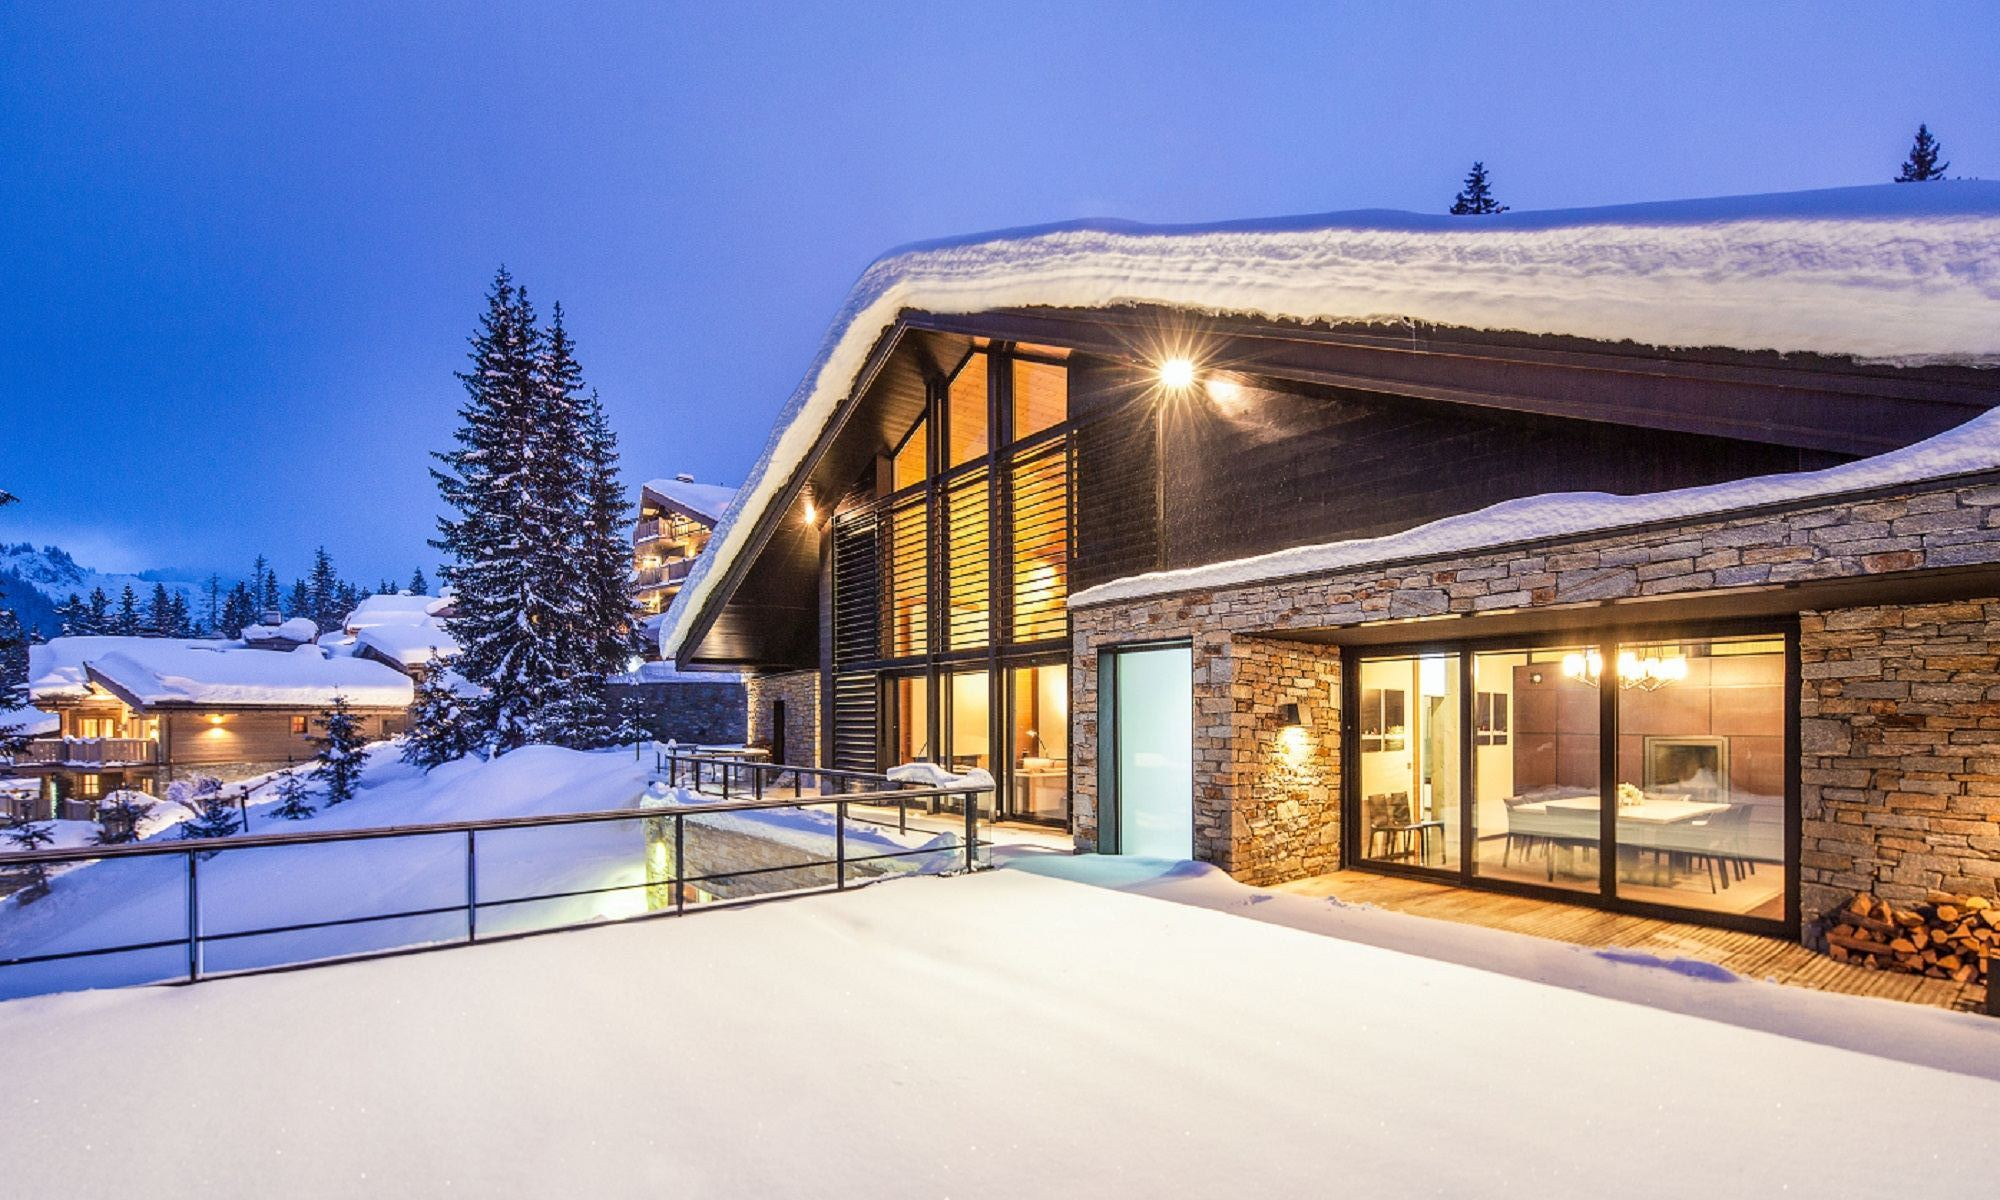 Villa per Affitto alle ore Luxury chalet for rent Courchevel Greystone Courchevel, Rodano-Alpi, 73120 Francia